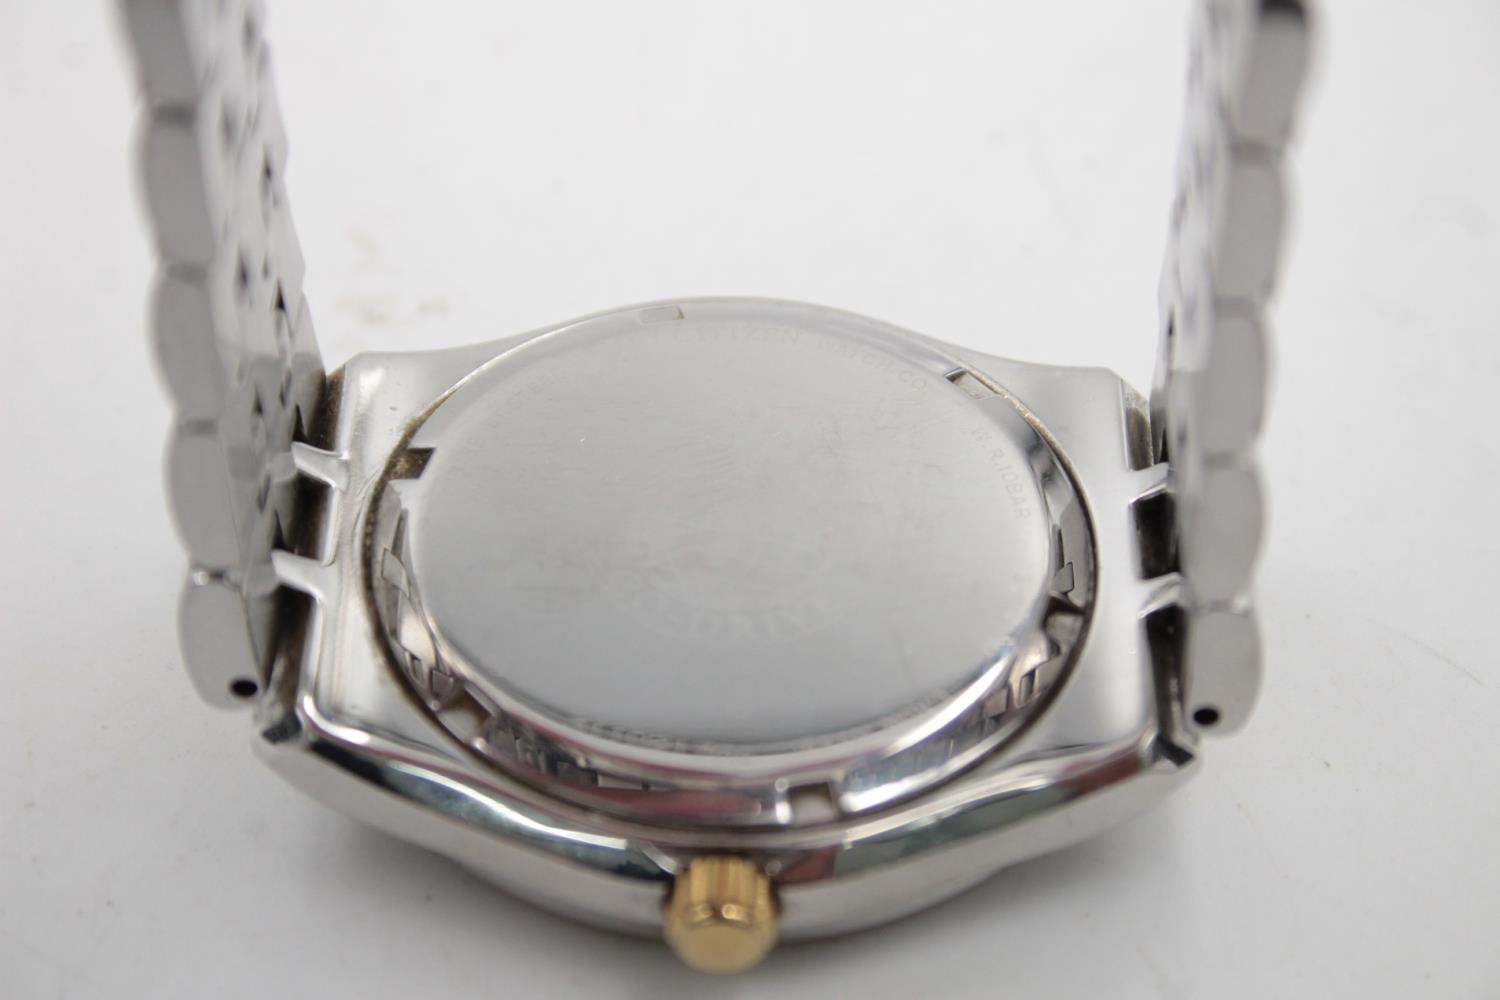 Gents CITIZEN Eco-Drive WR100 Two Tone WRISTWATCH WORKING in Original Box - Image 5 of 7